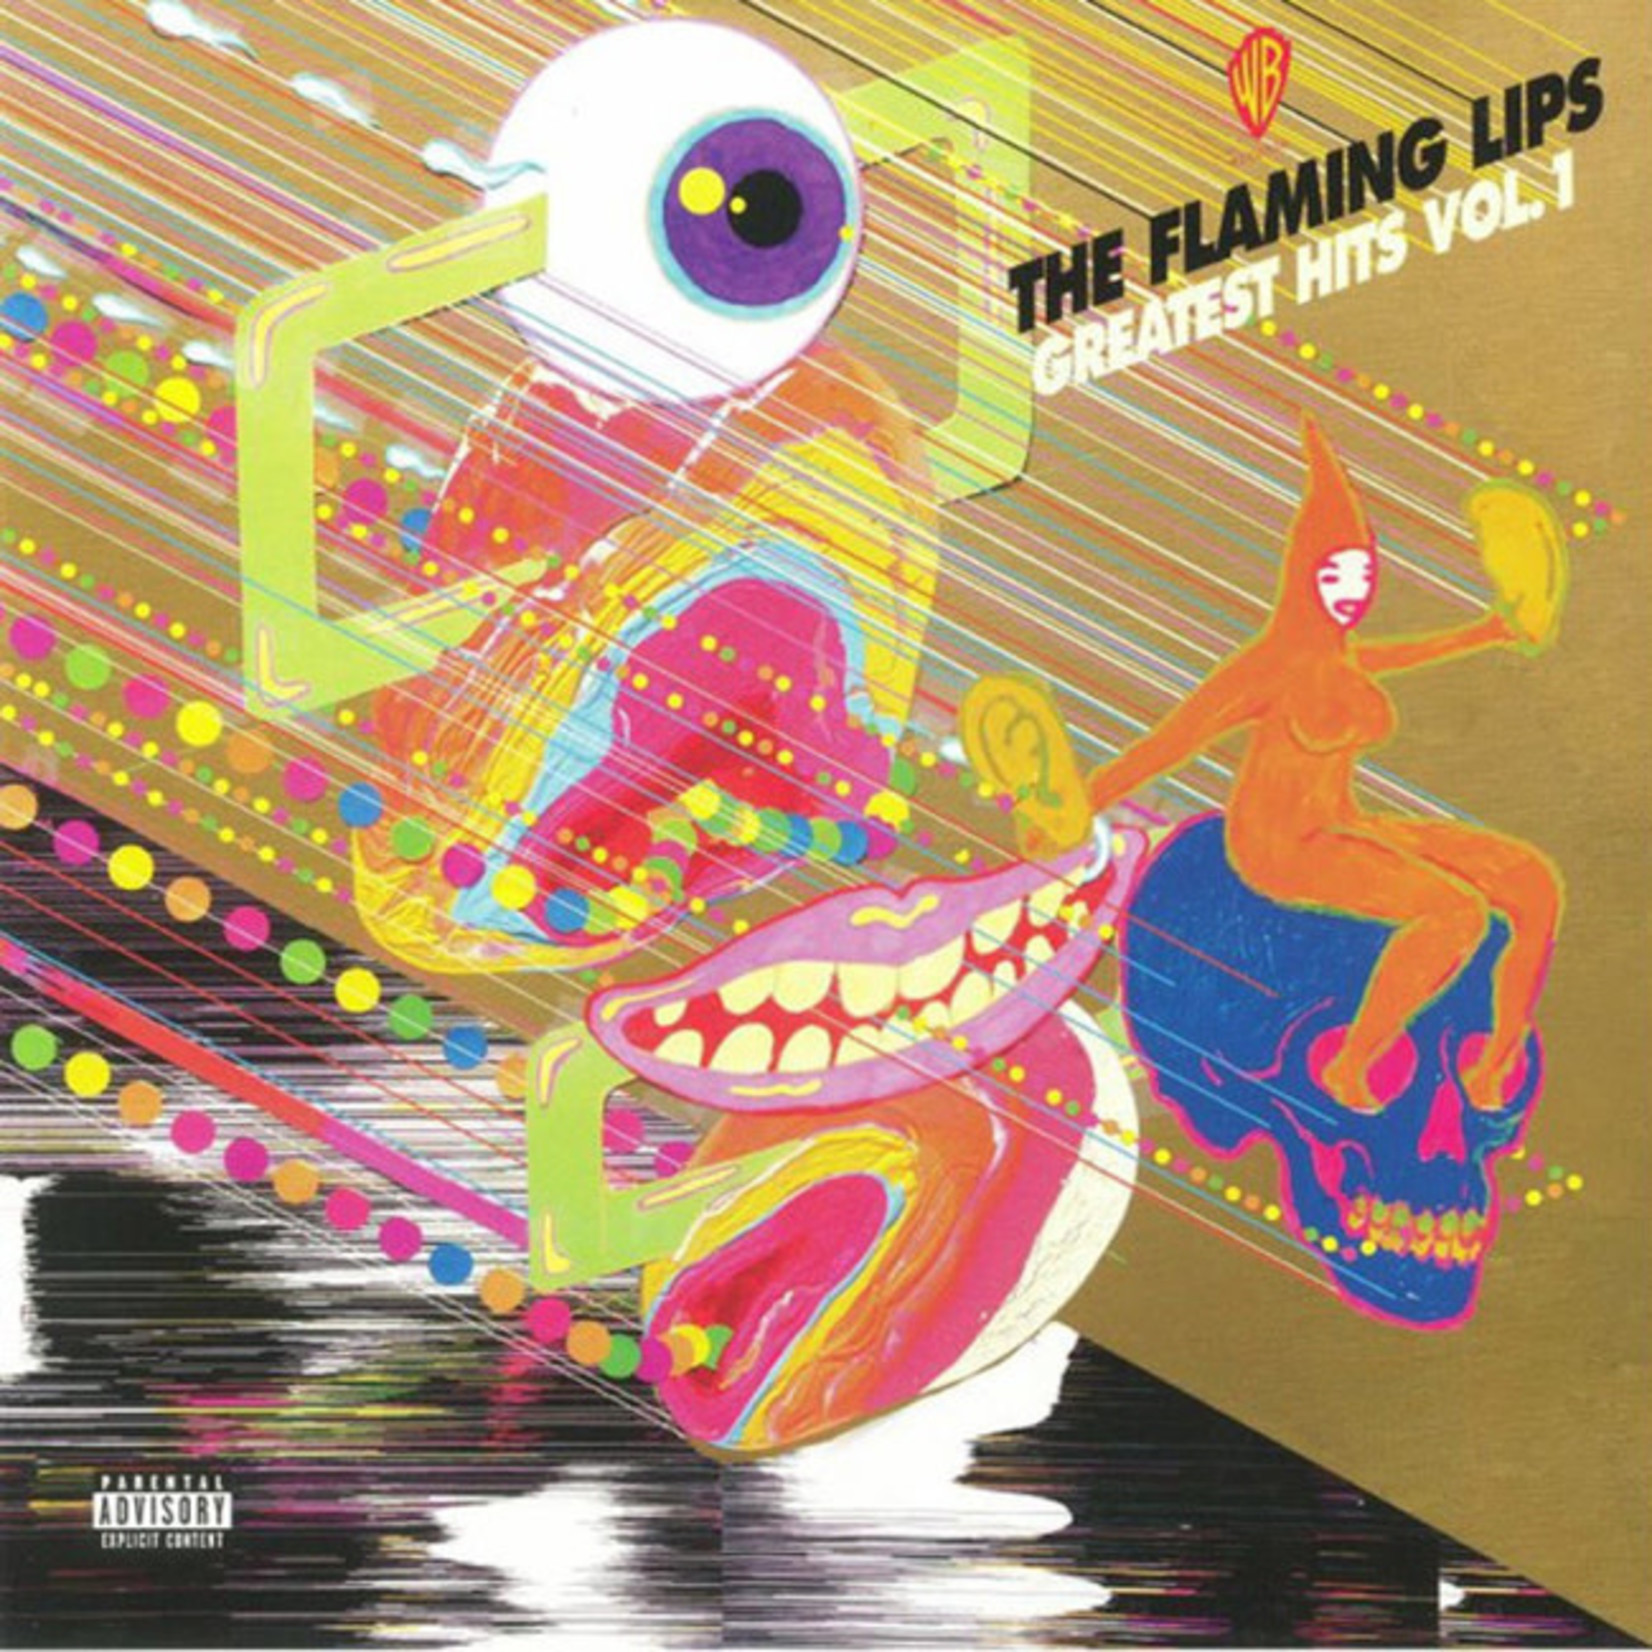 [New] Flaming Lips: Greatest Hits, Vol. 1